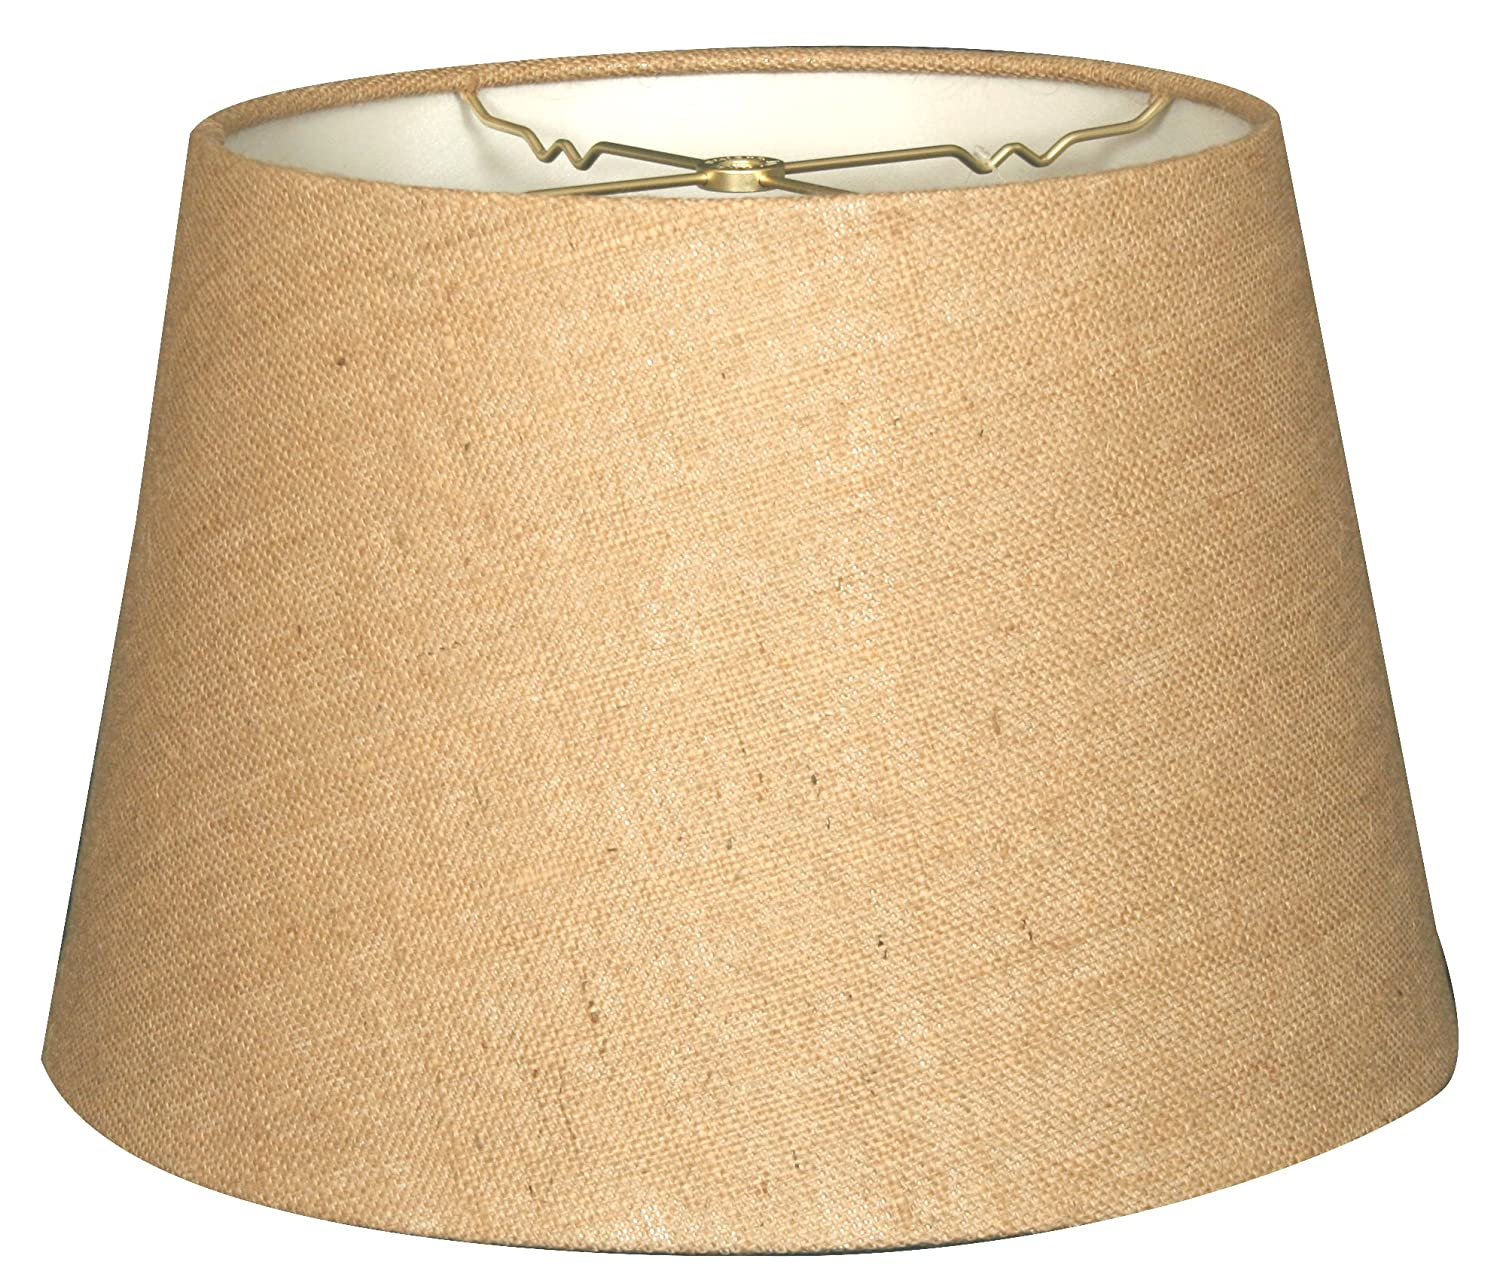 Amazon royal designs tapered shallow drum hardback lamp shade amazon royal designs tapered shallow drum hardback lamp shade linen cream 12 x 16 x 11 home improvement aloadofball Gallery